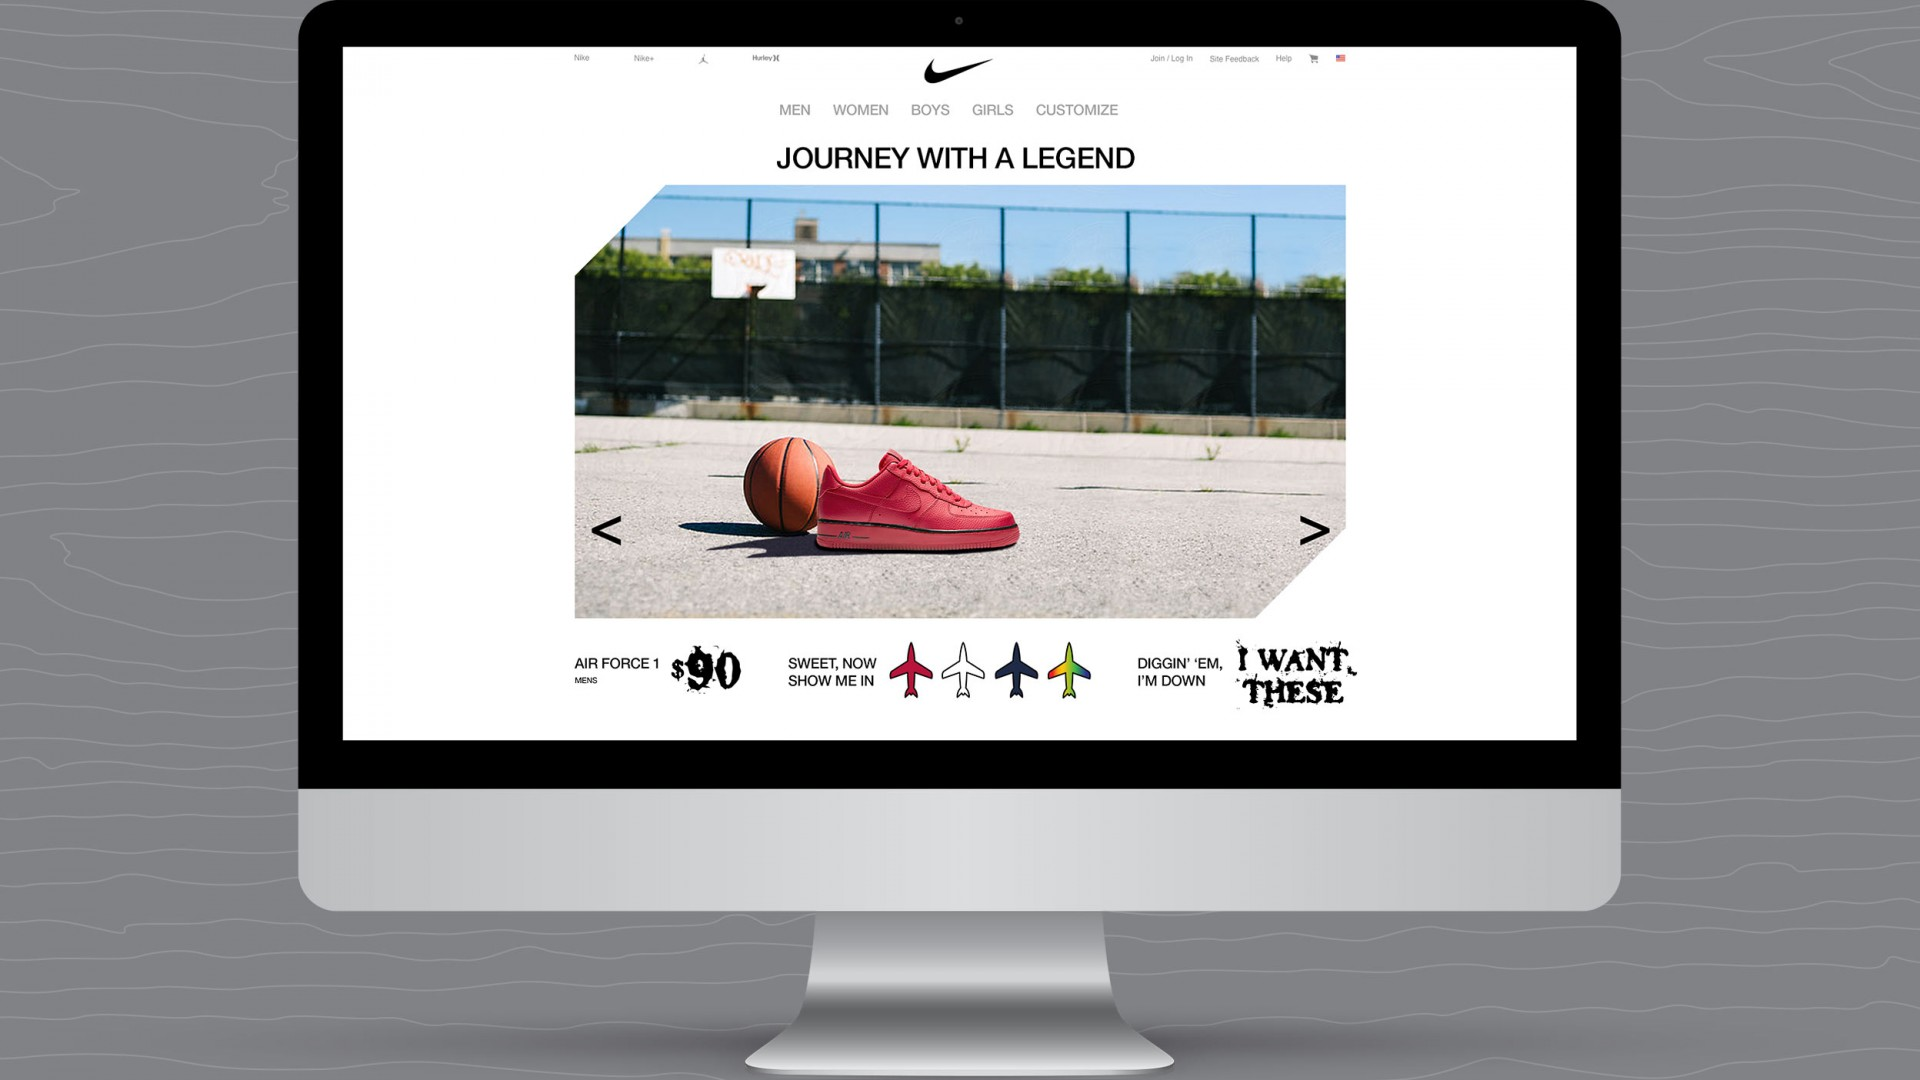 Journey With A Legend, Nike UX/UI, desktop view.